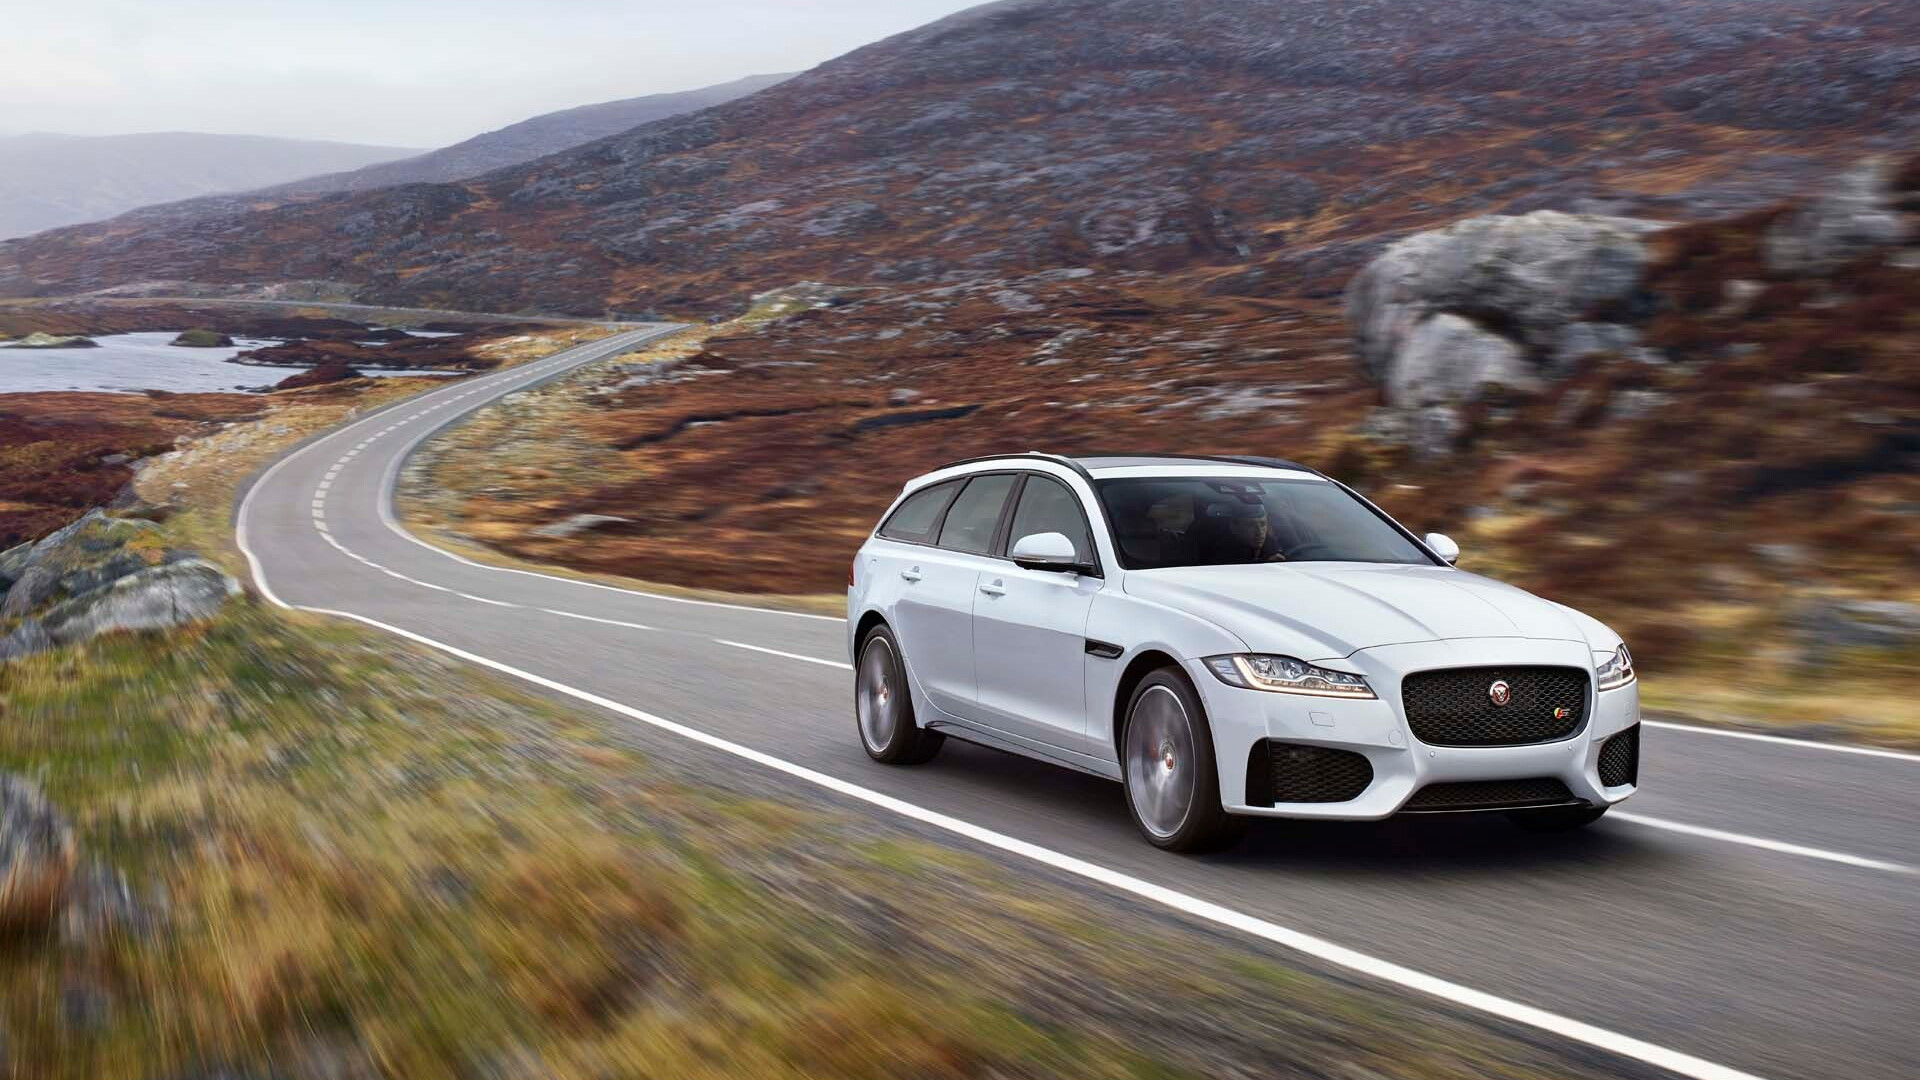 jaguar xf 2 2 diesel covers 816 miles on one tank  forbidden fruit